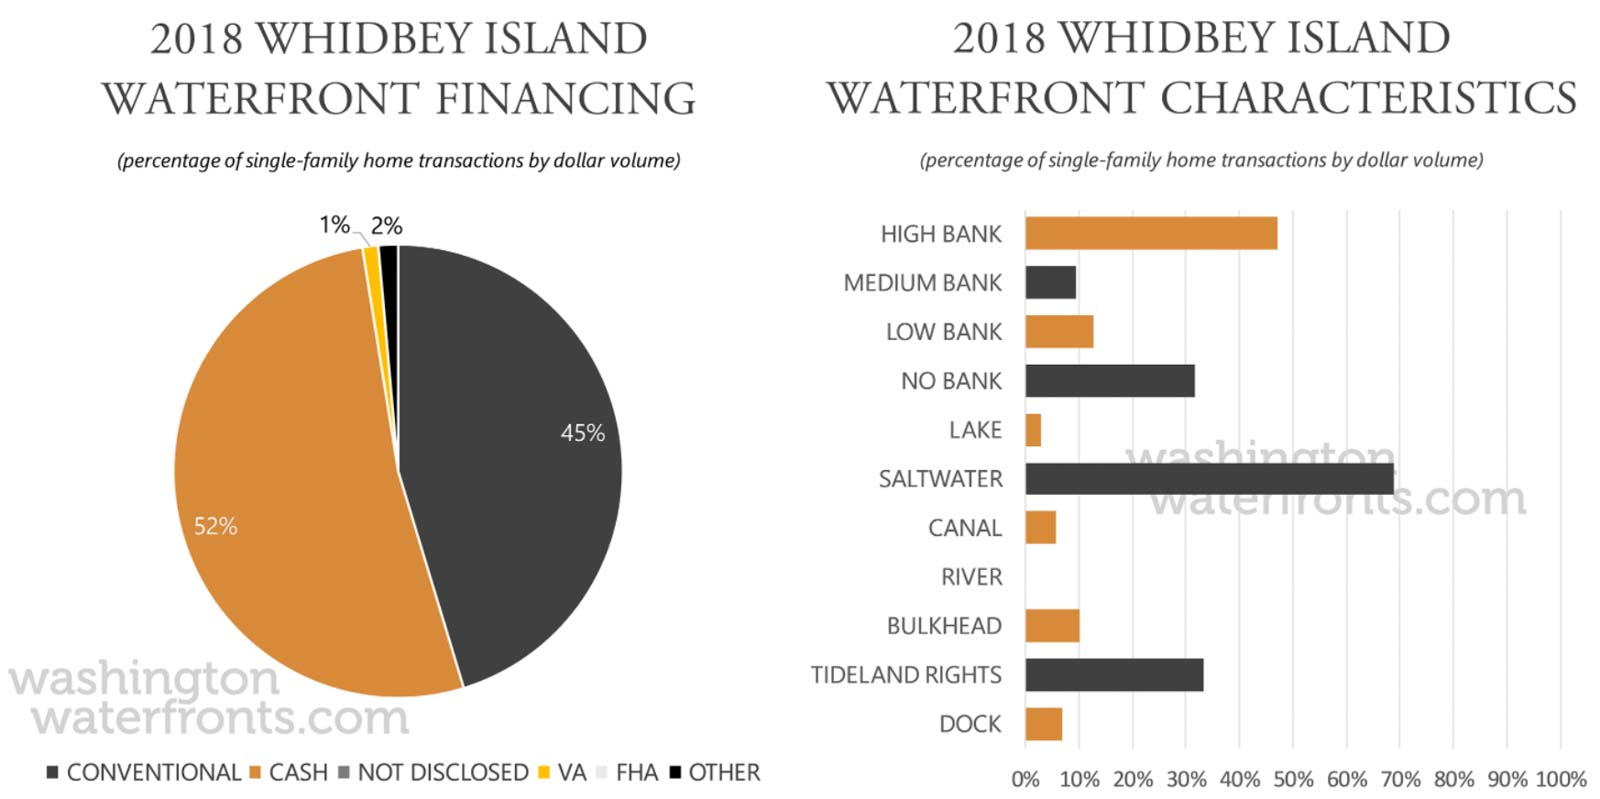 Whidbey Island Financing and Waterfront Type